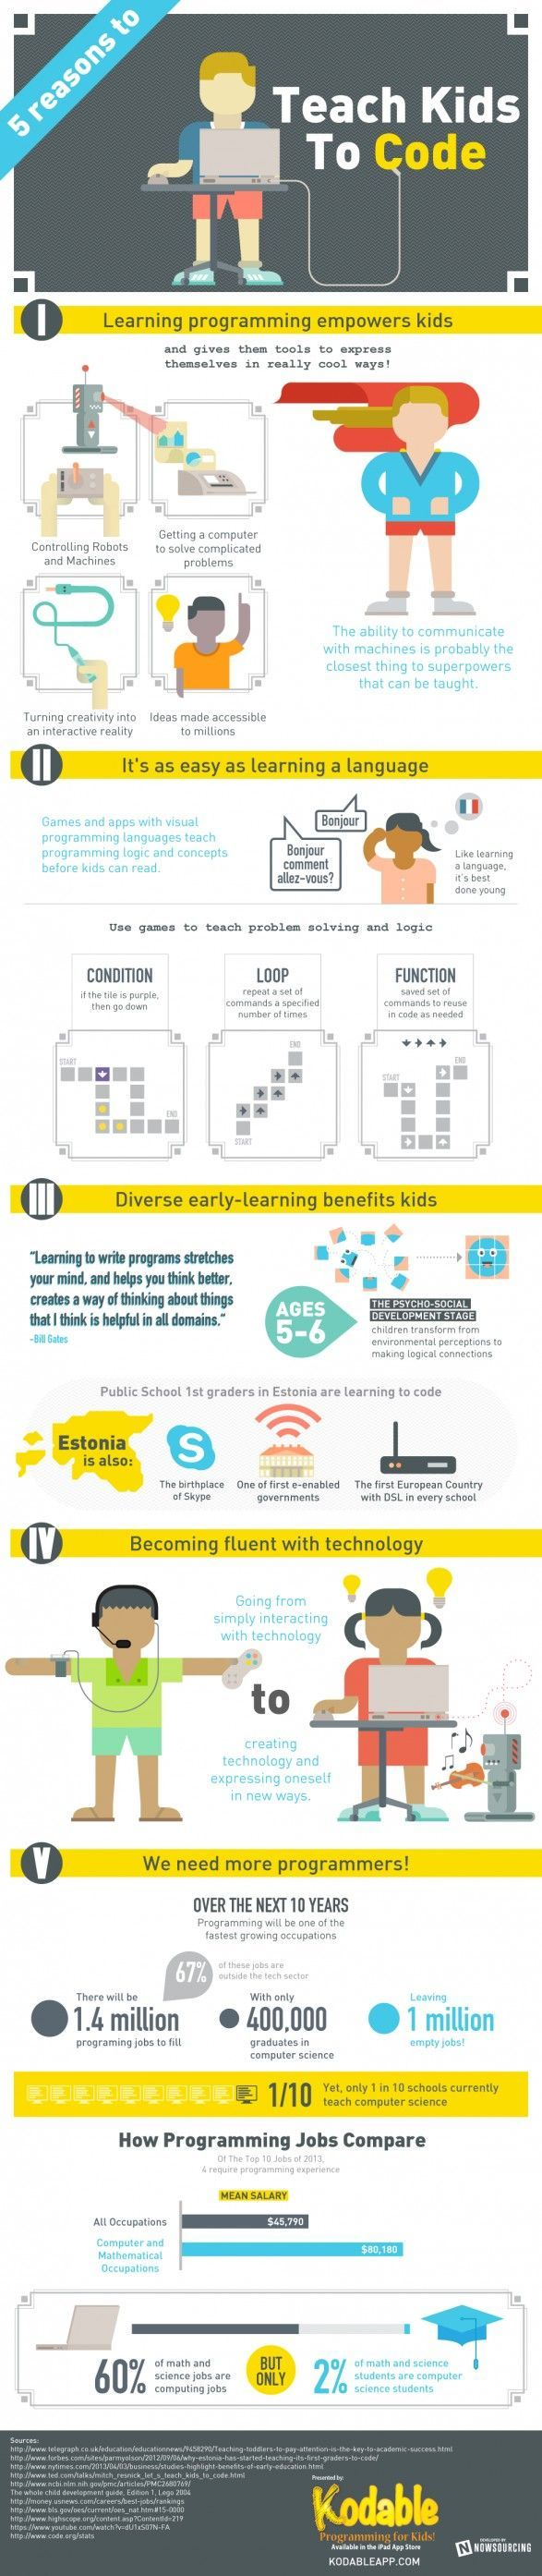 5 Reasons You Should Teach Kids To Code